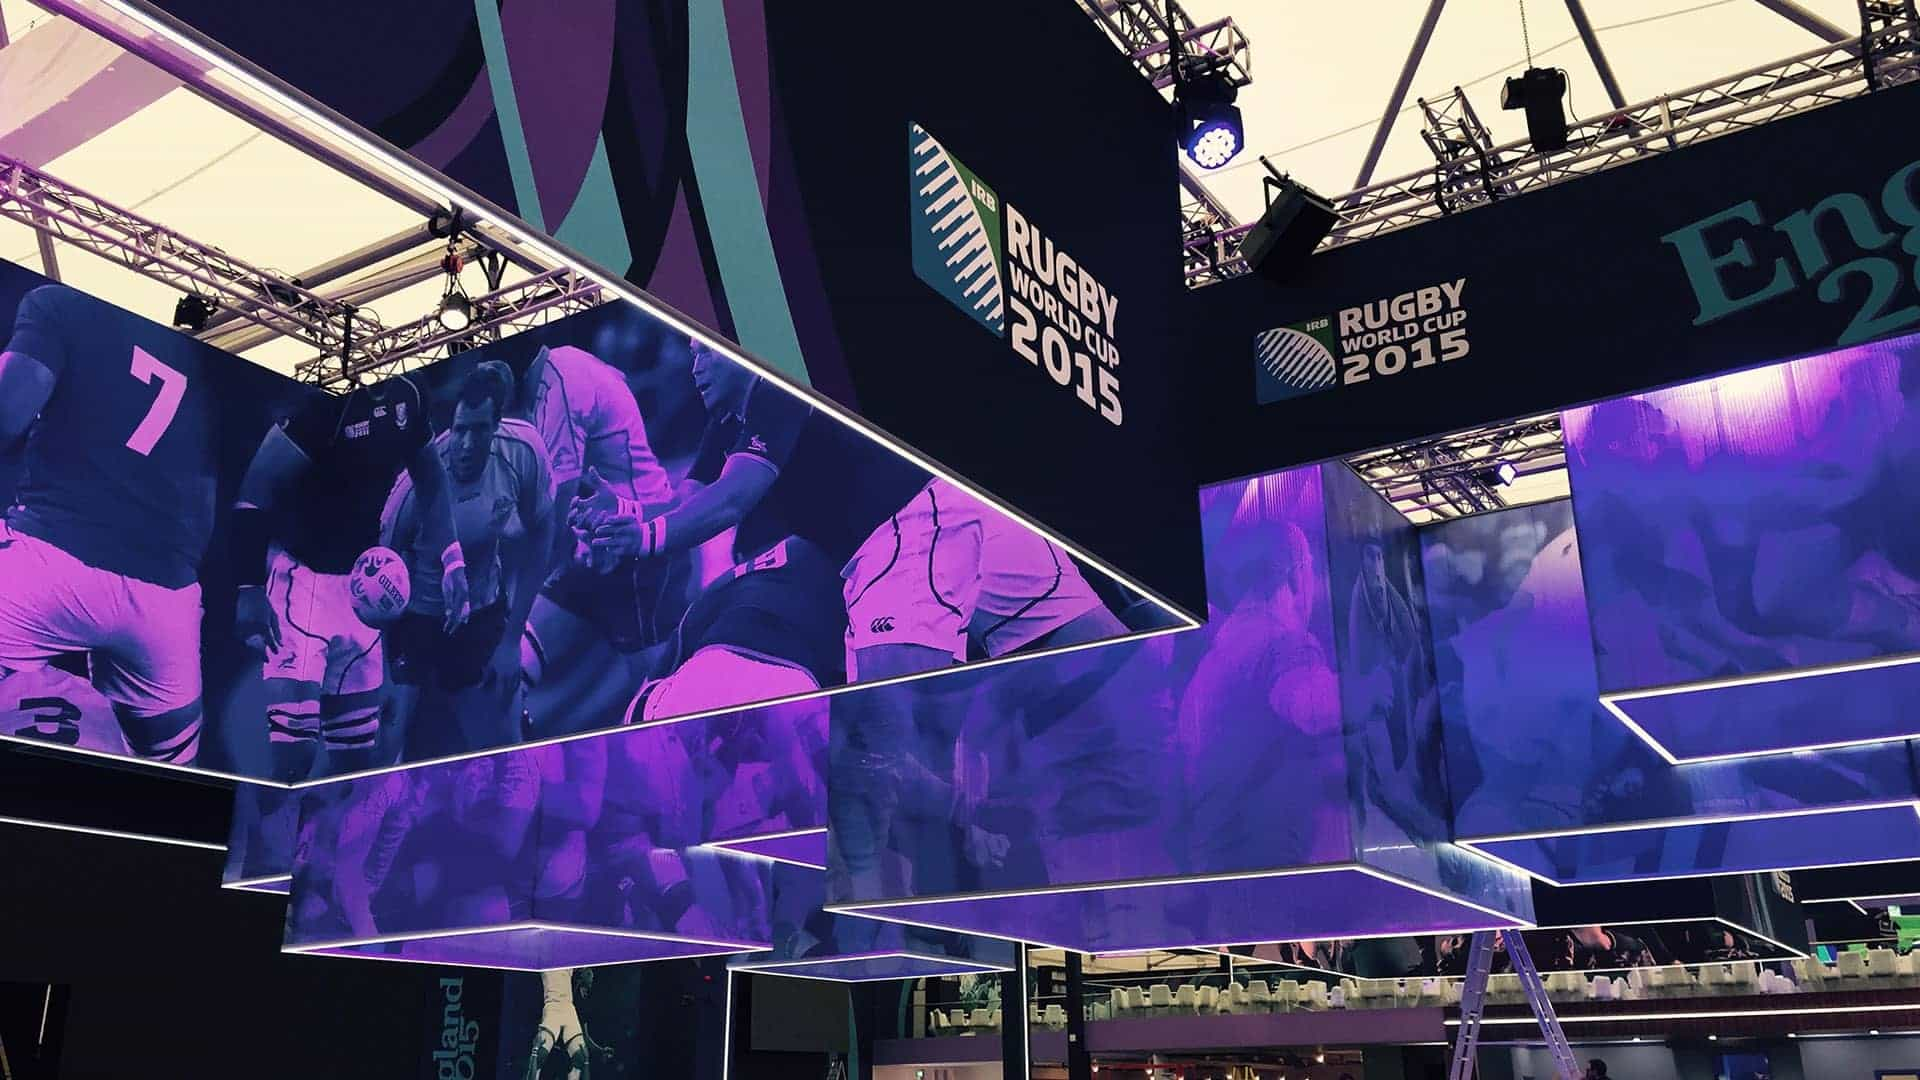 Rugby World Cup 2015 Sports Signage TFS Hanging Structures